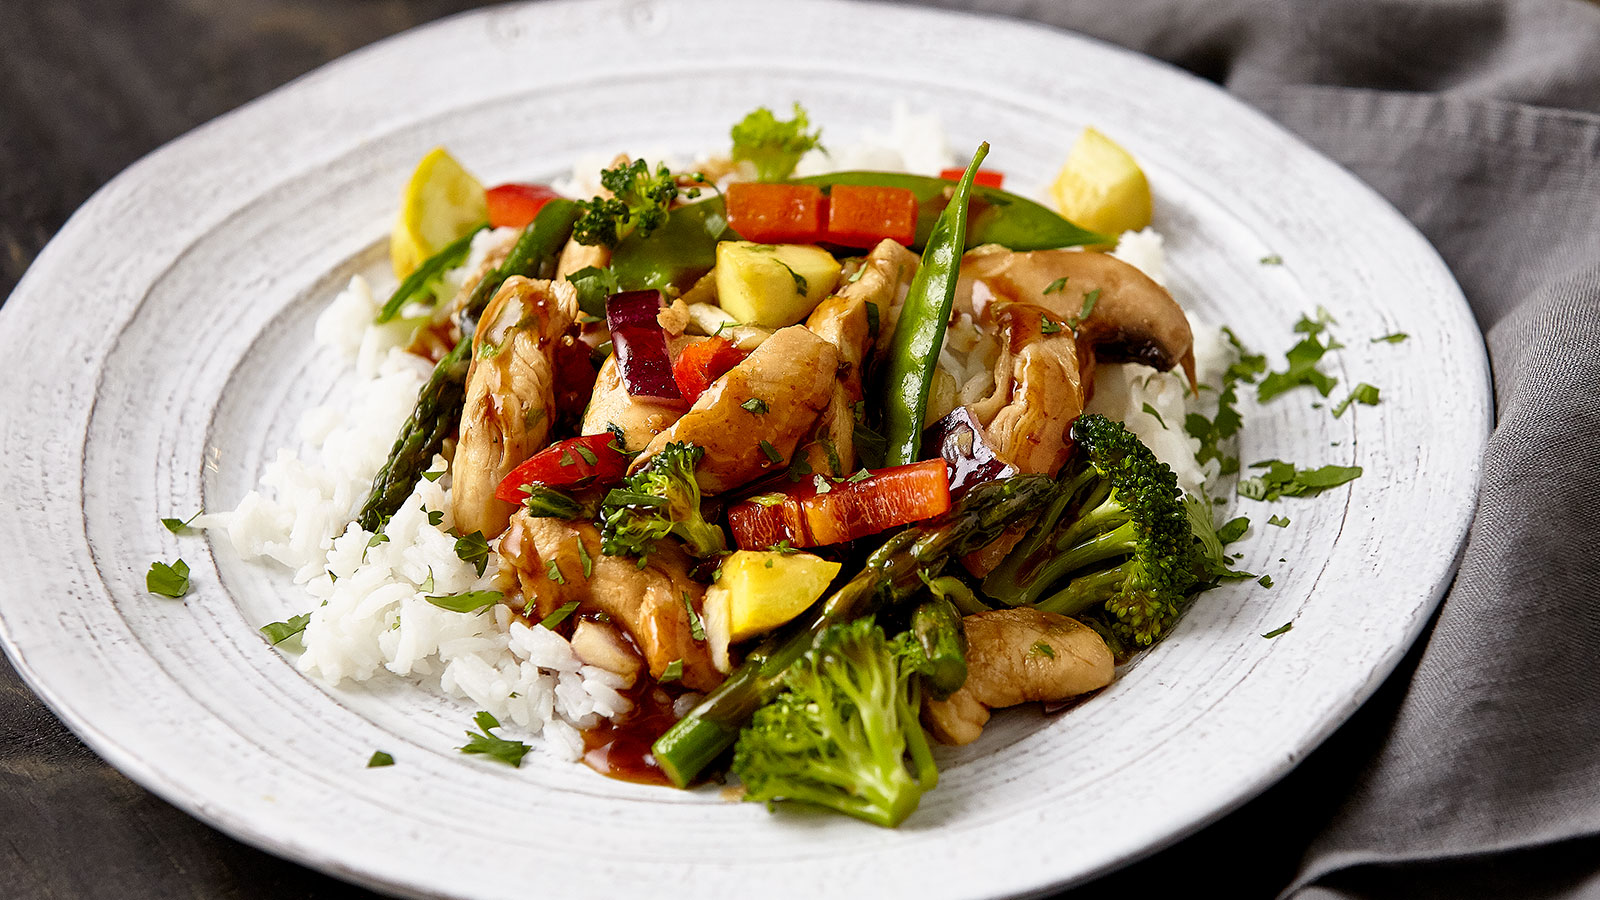 Teriyaki-Chicken-Stir-Fry-LBM